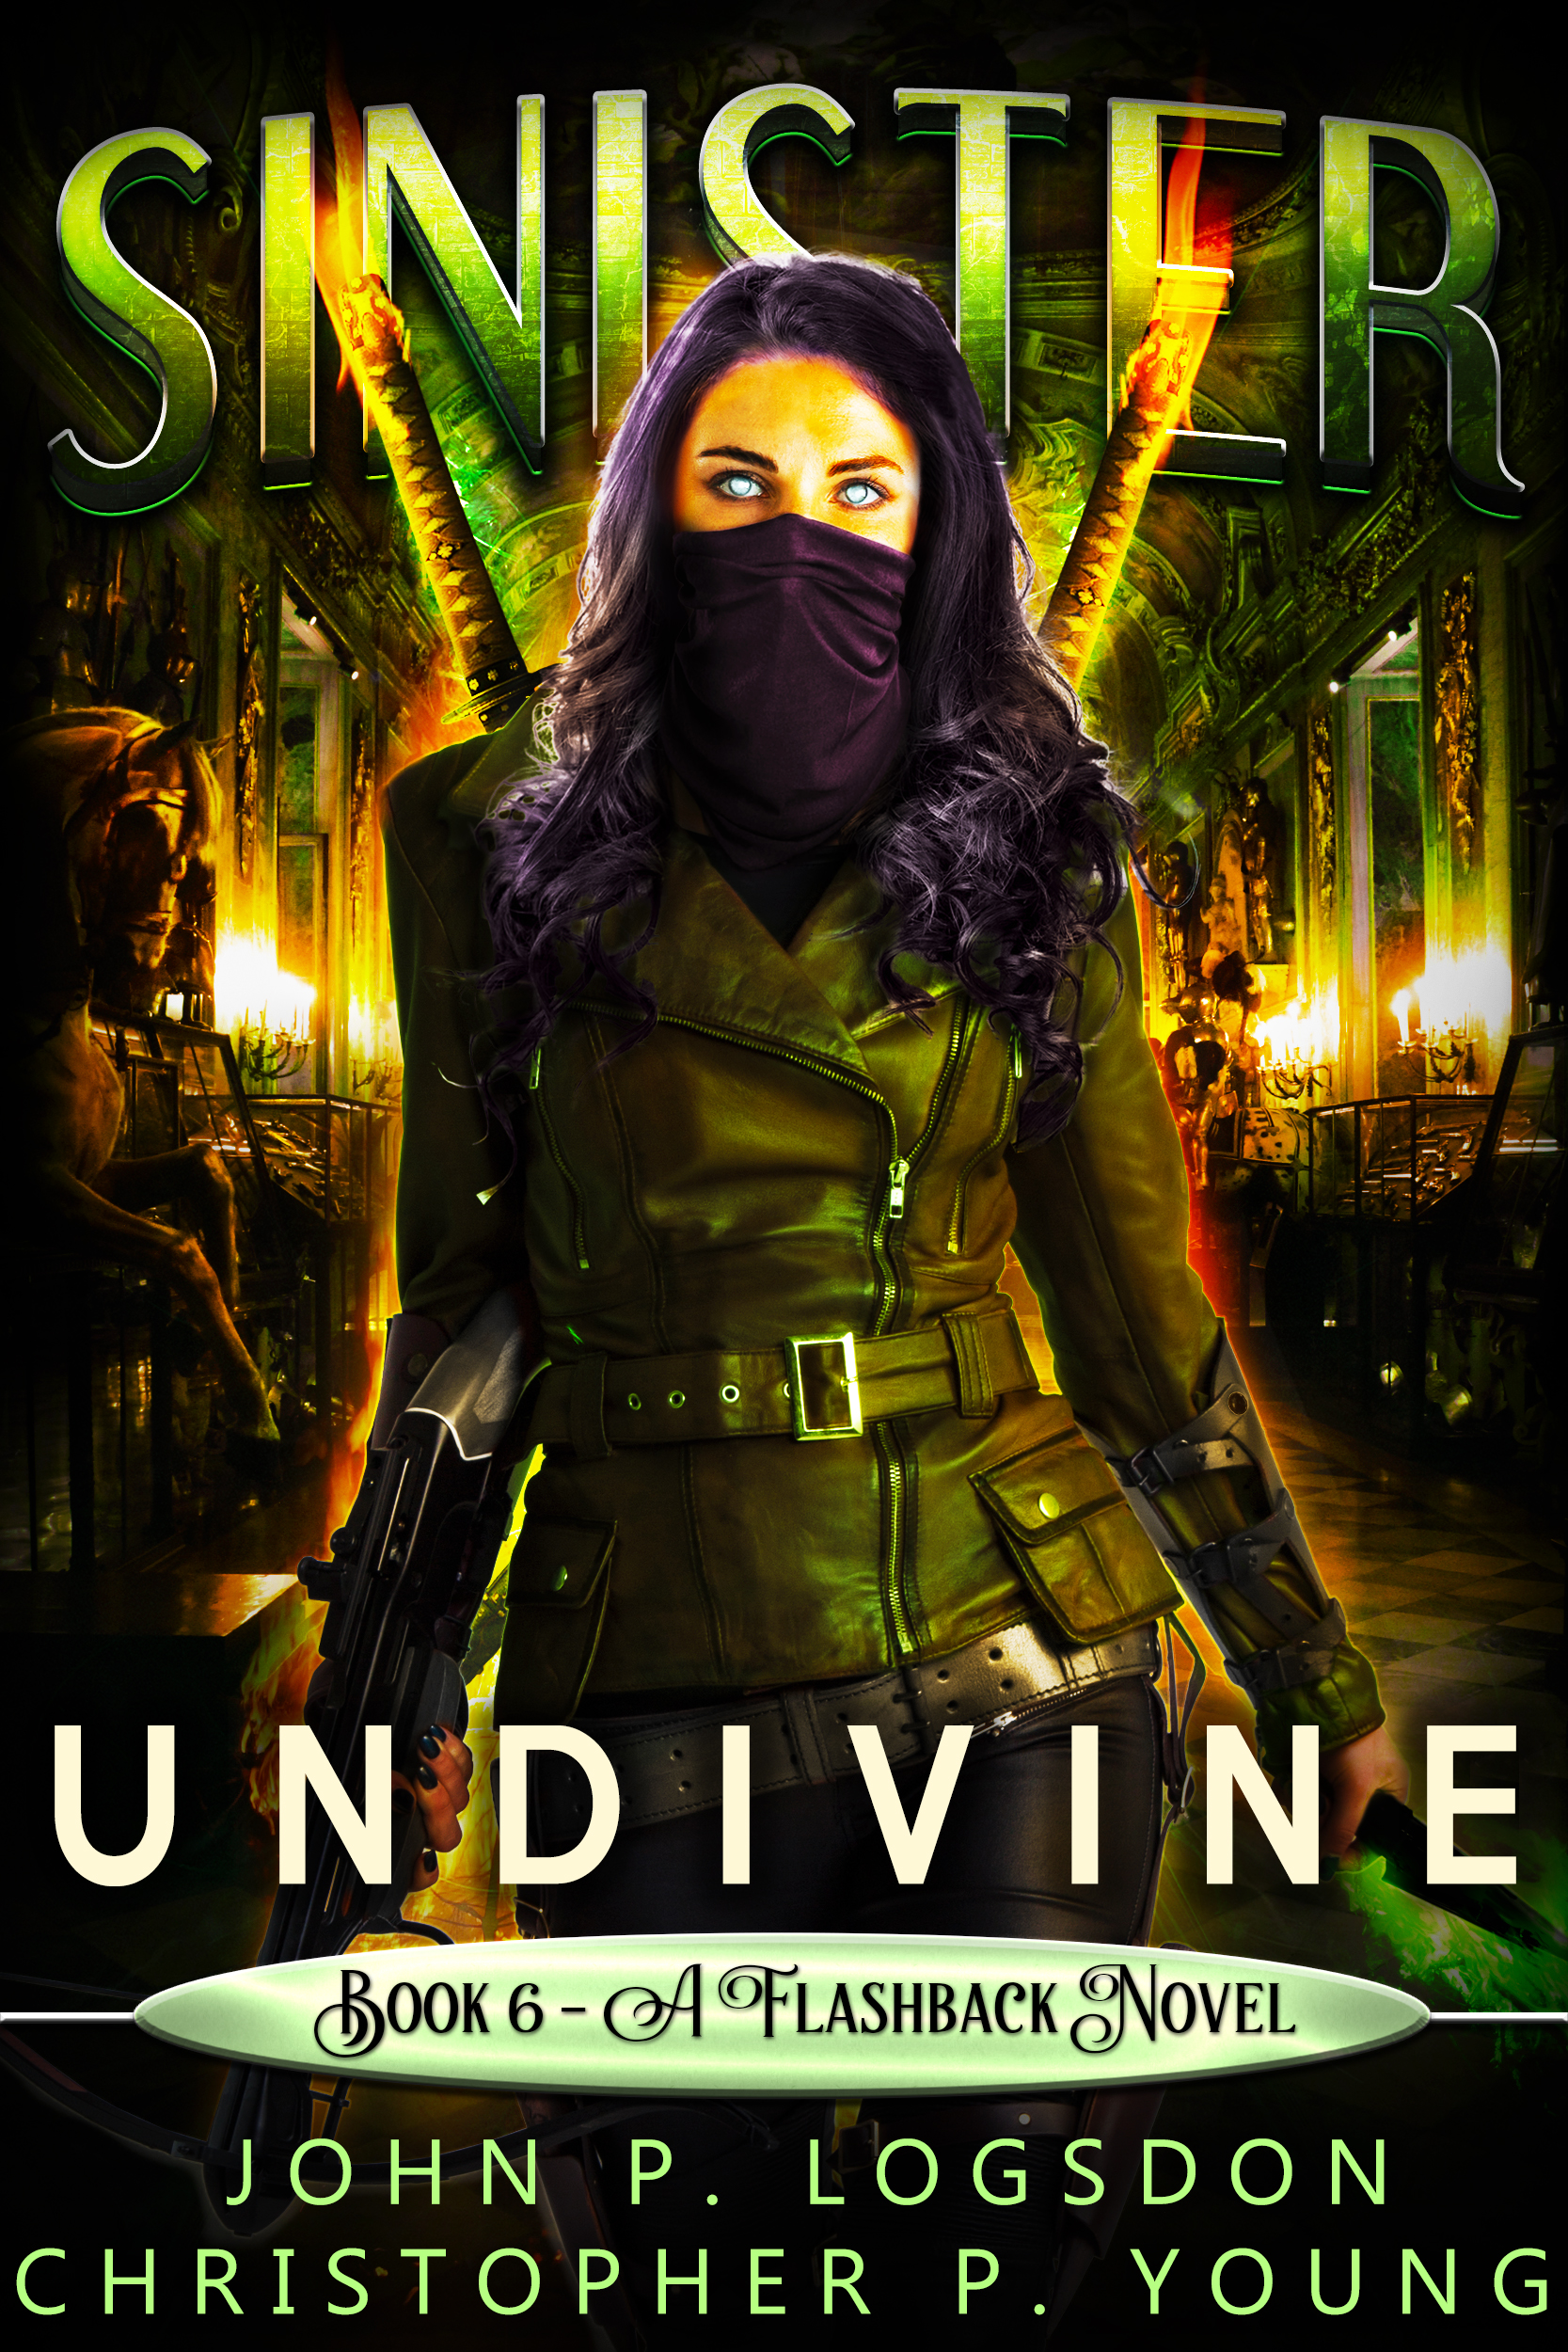 Sinister: Undivine (A Flashback Novel)